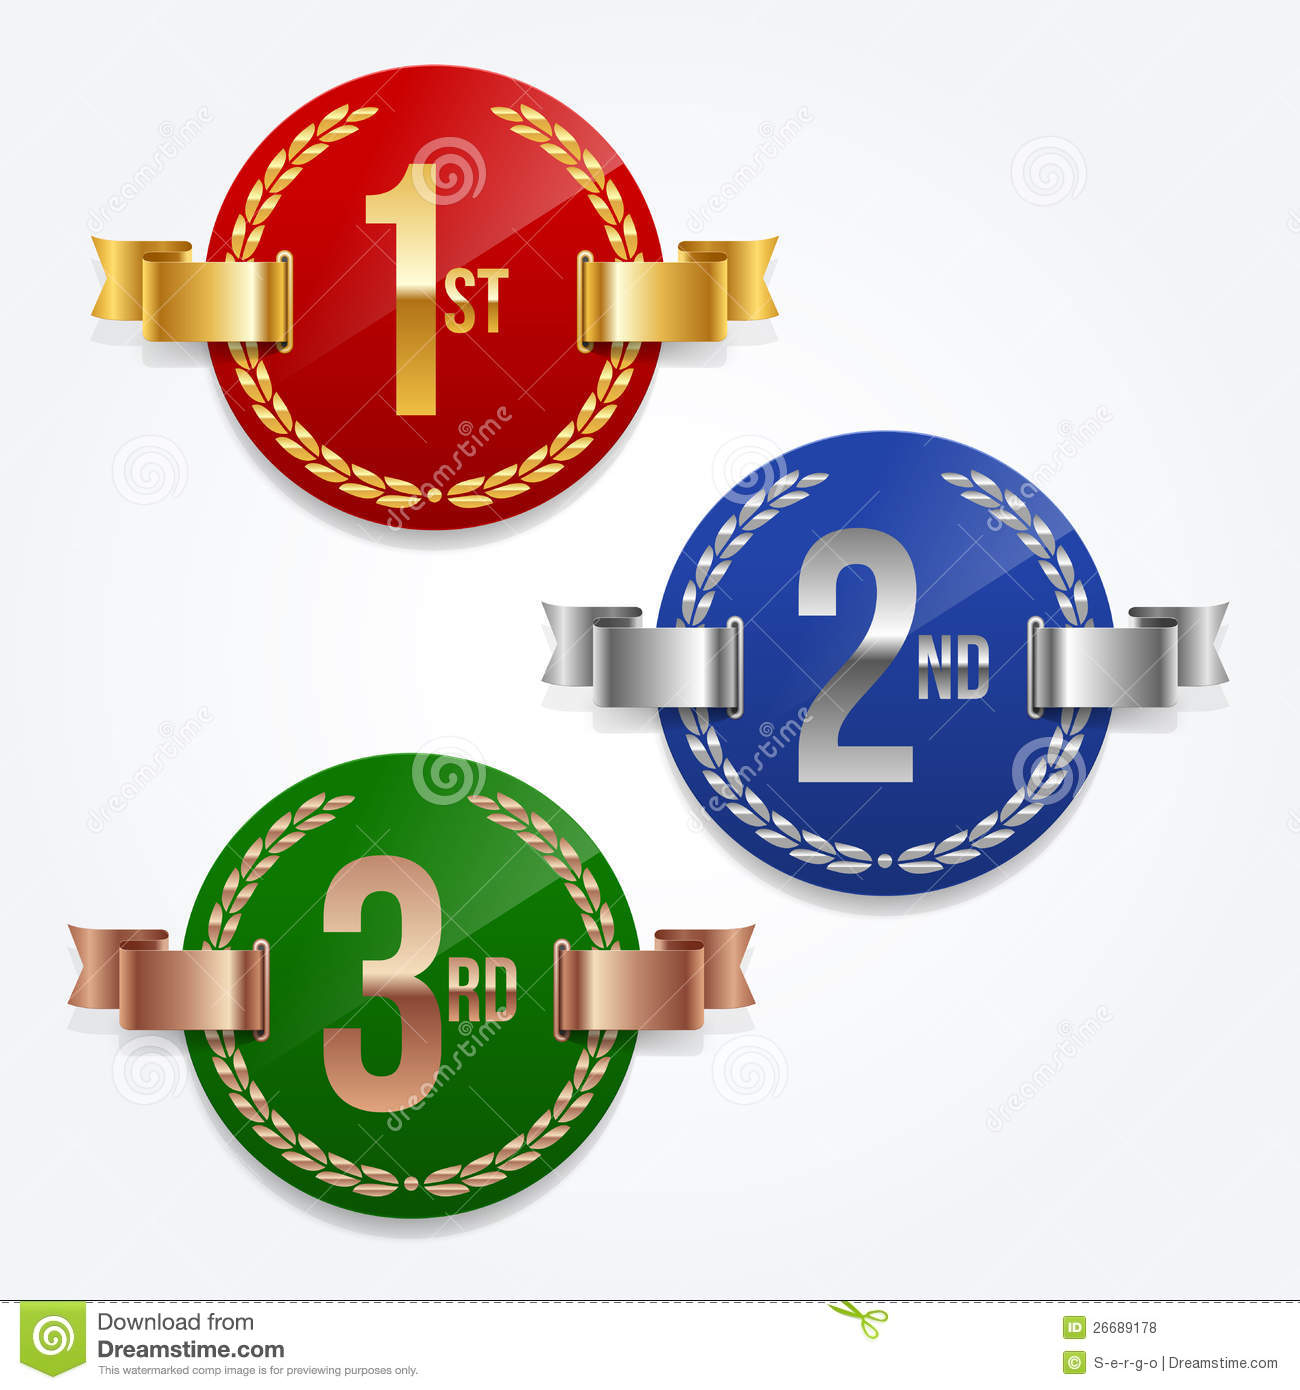 1st  2nd  3rd Awards Emblems Royalty Free Stock Photos   Image